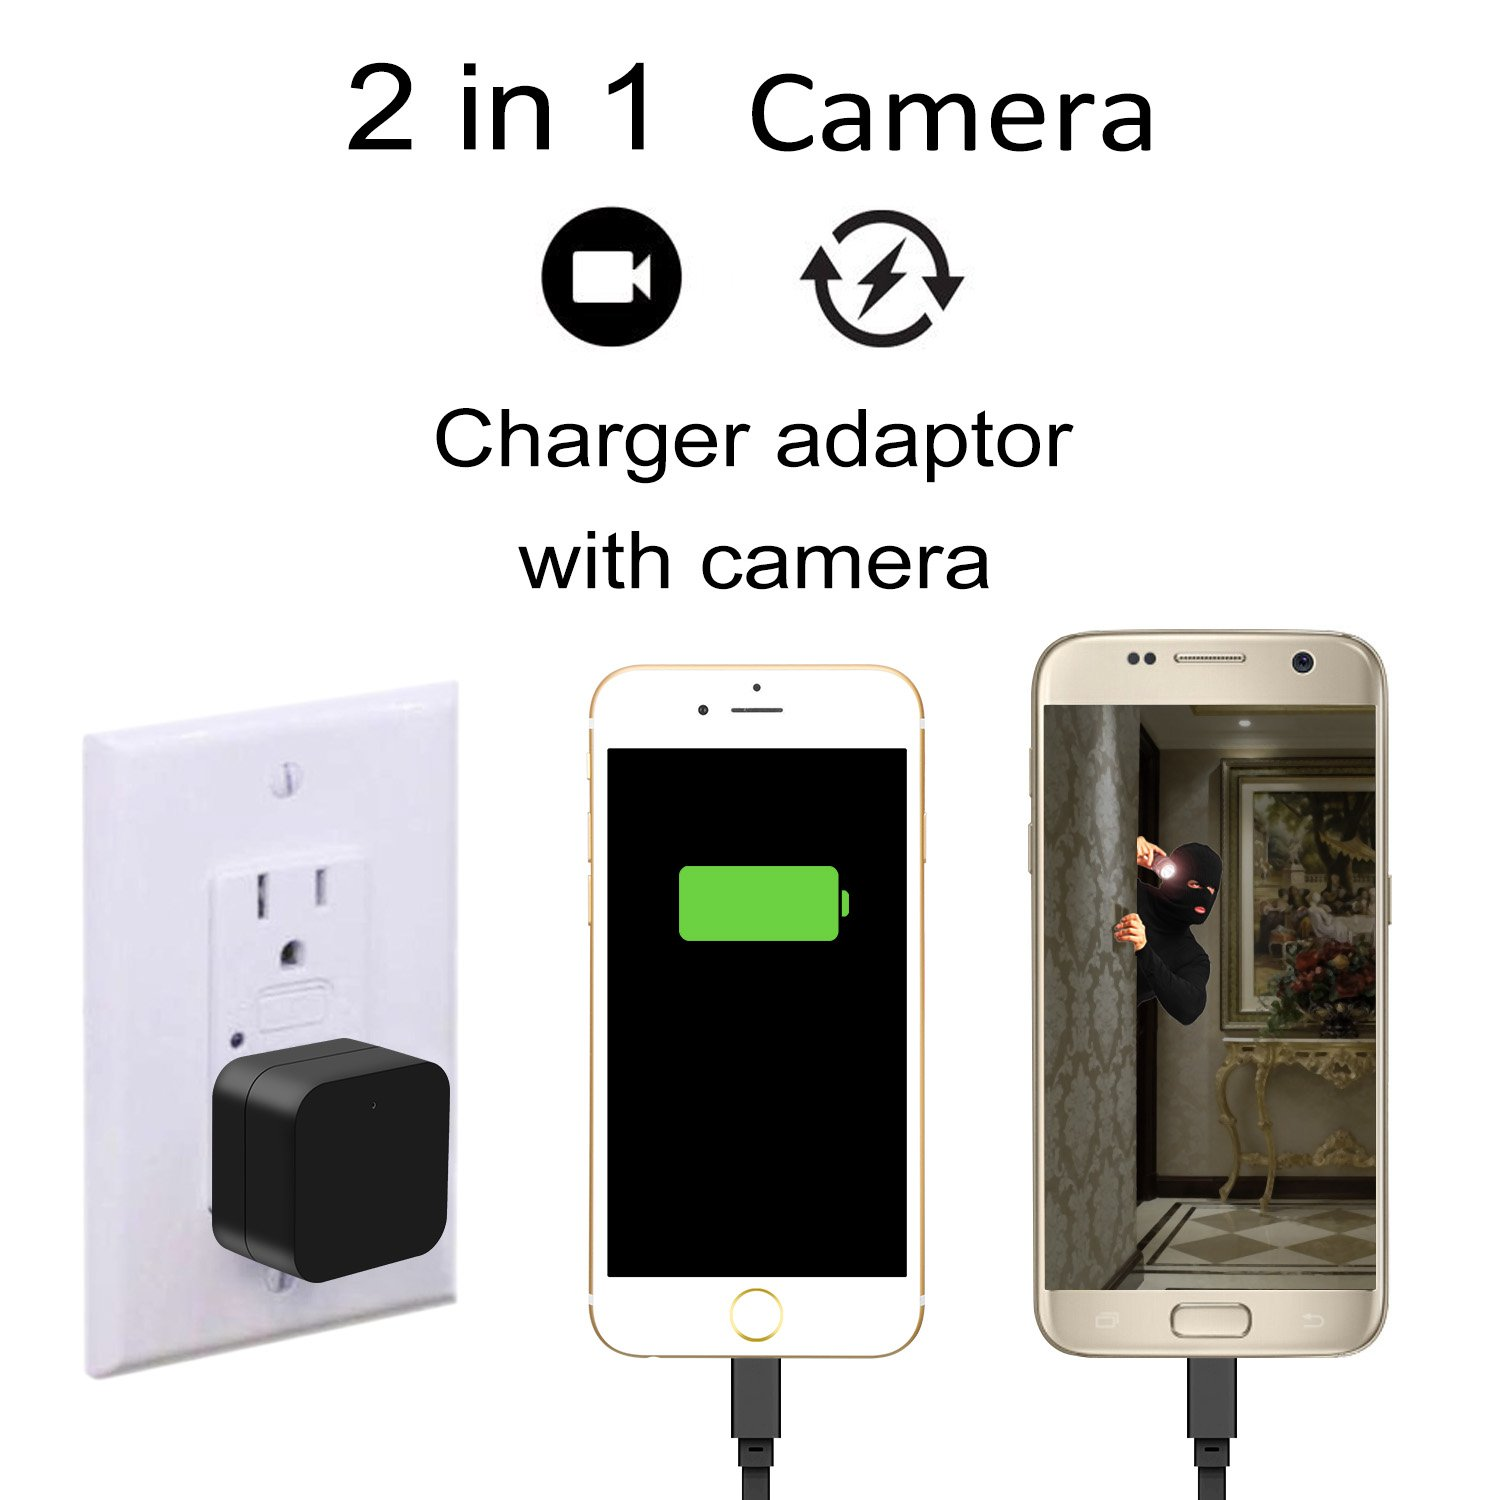 Hidden Camera Mini Hd Spy 1080p Wifi Remote View Motion The Guitar Wiring Blog Diagrams And Tips Telecaster Directthrough Detection Charging Phones Home Security Photo